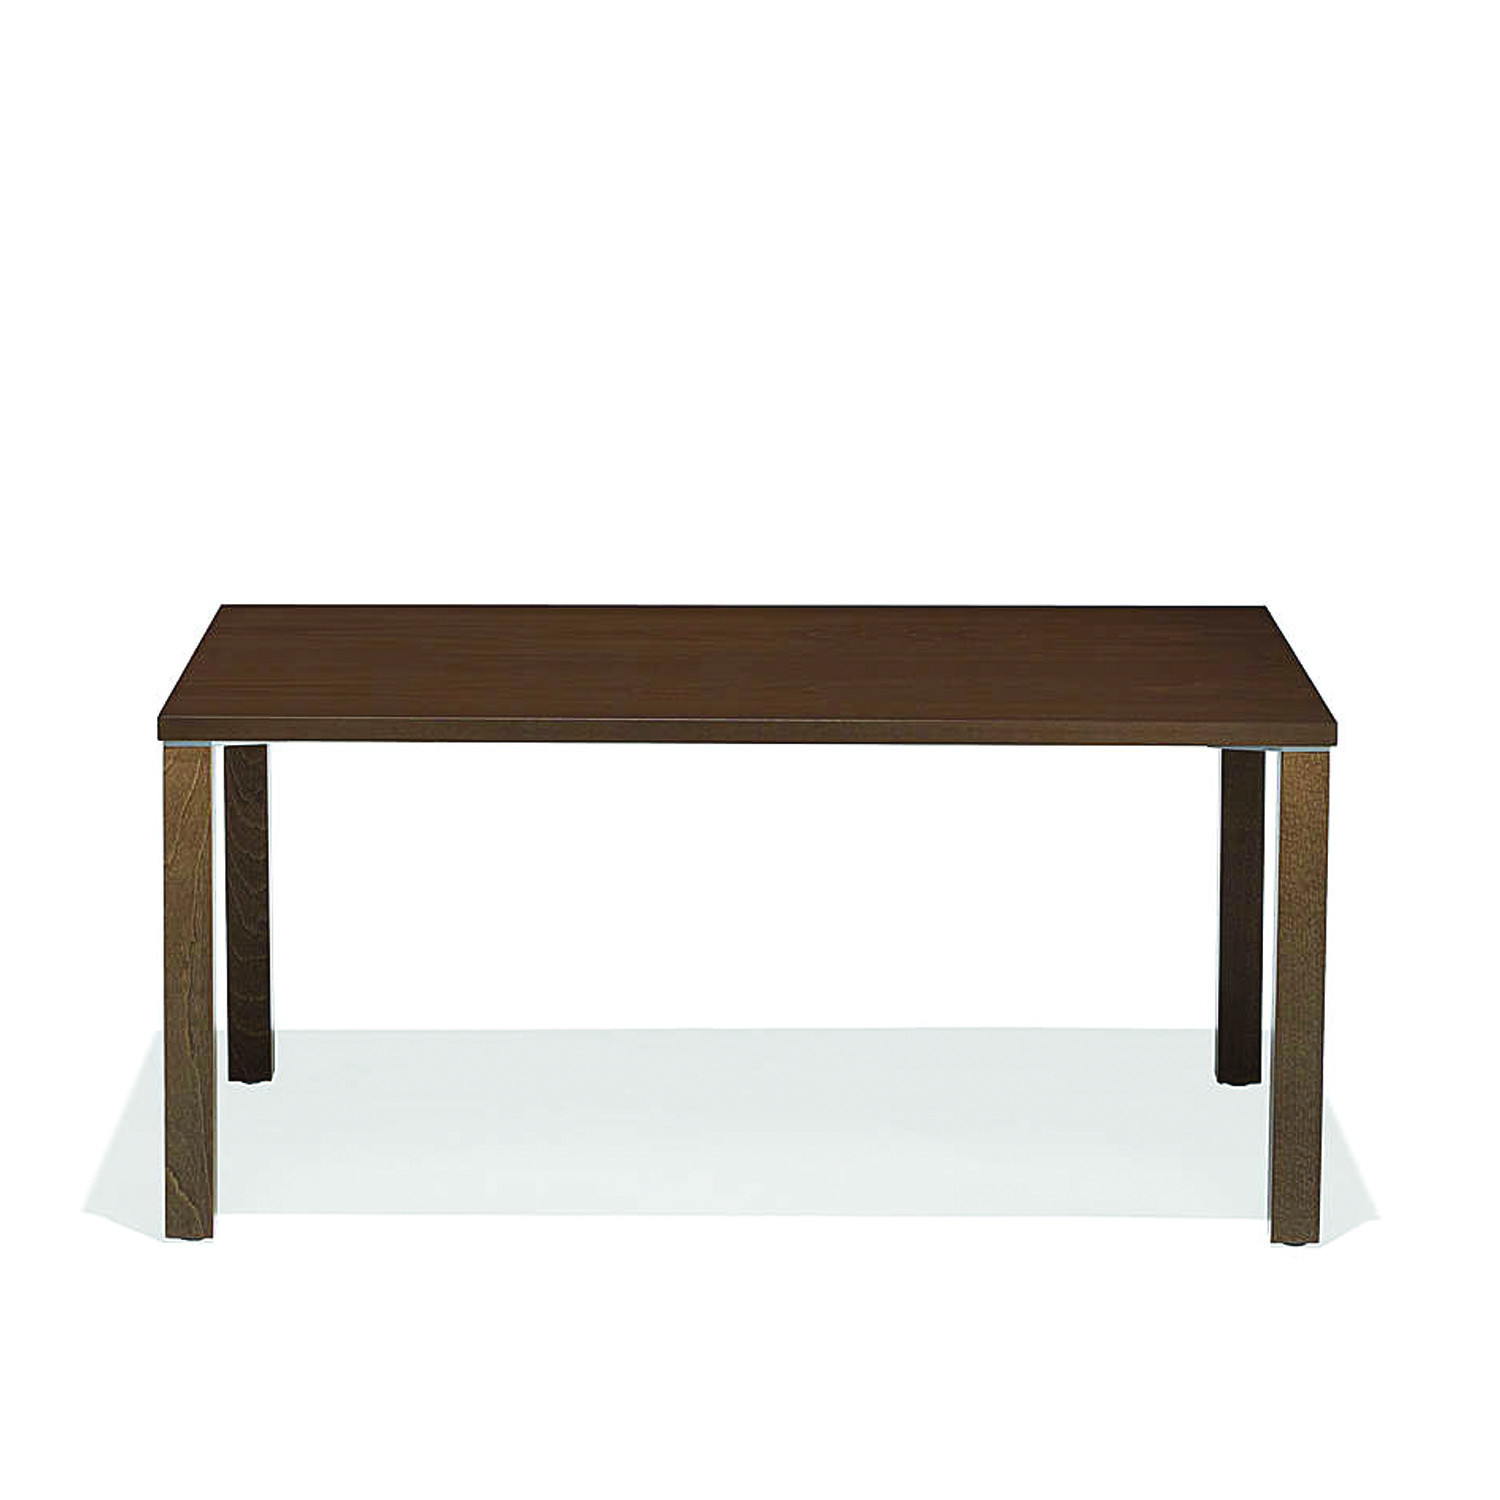 1750 Pinta Rectangular Coffee Table